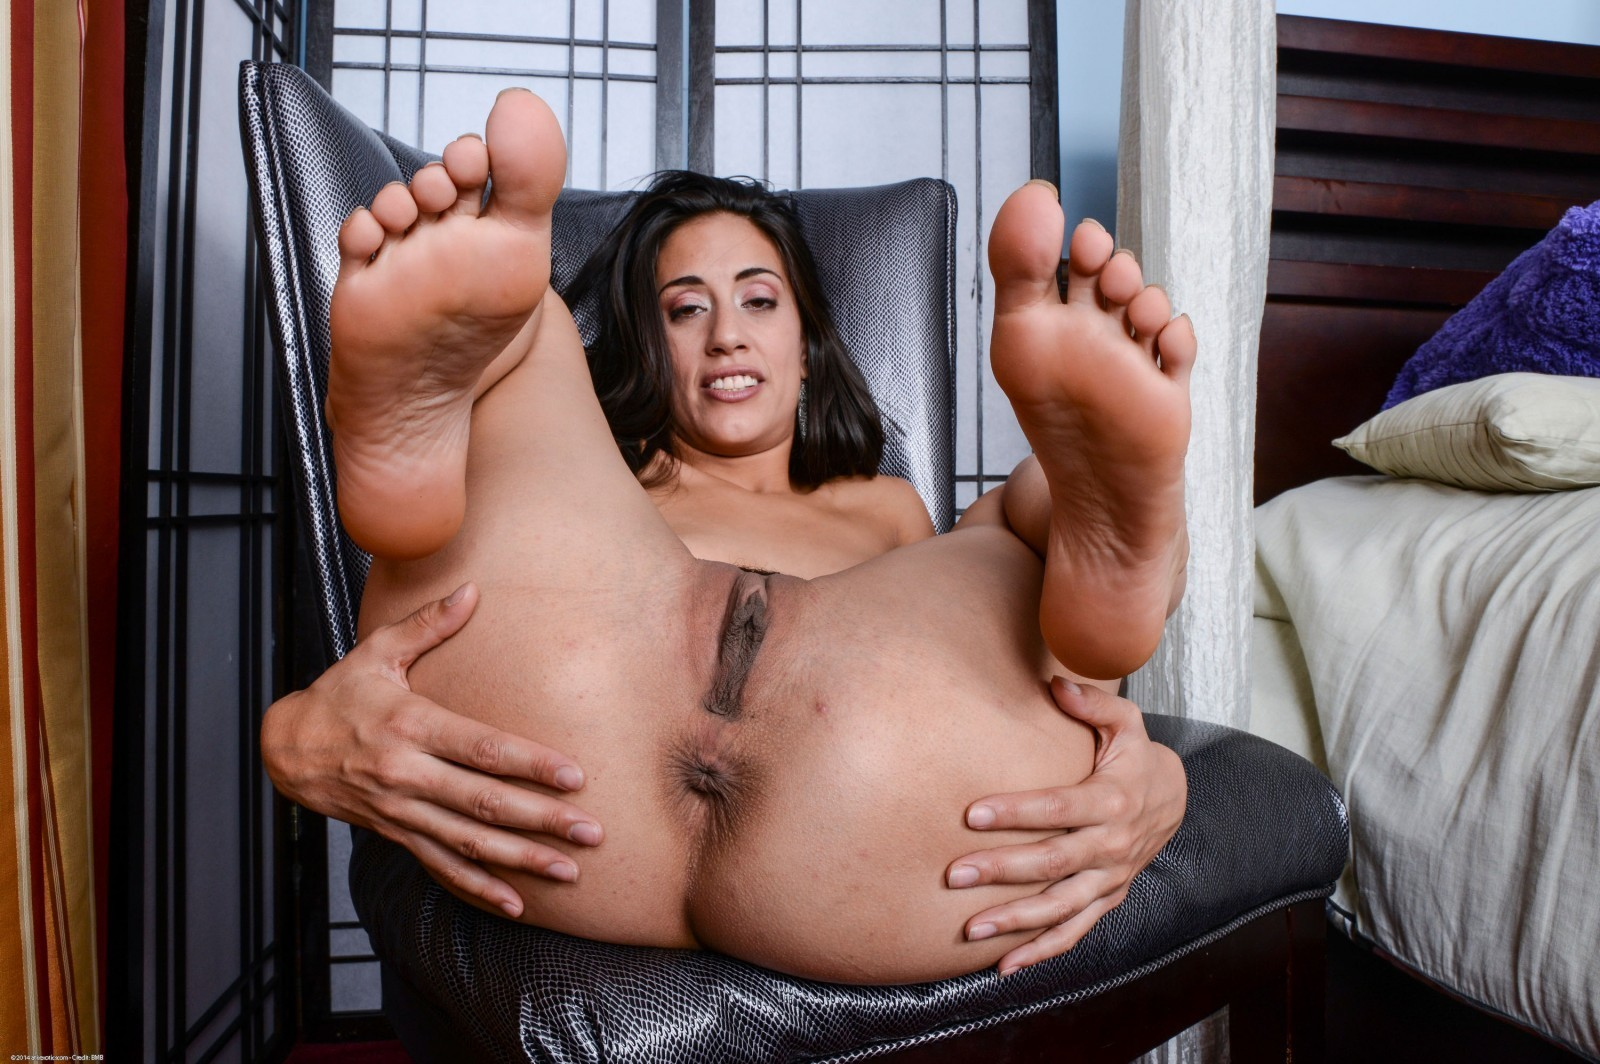 Footfetishdaily Nadia Ali Nadia Ali Loves Sucking Dick And The Feel Of Cock On Her Feet